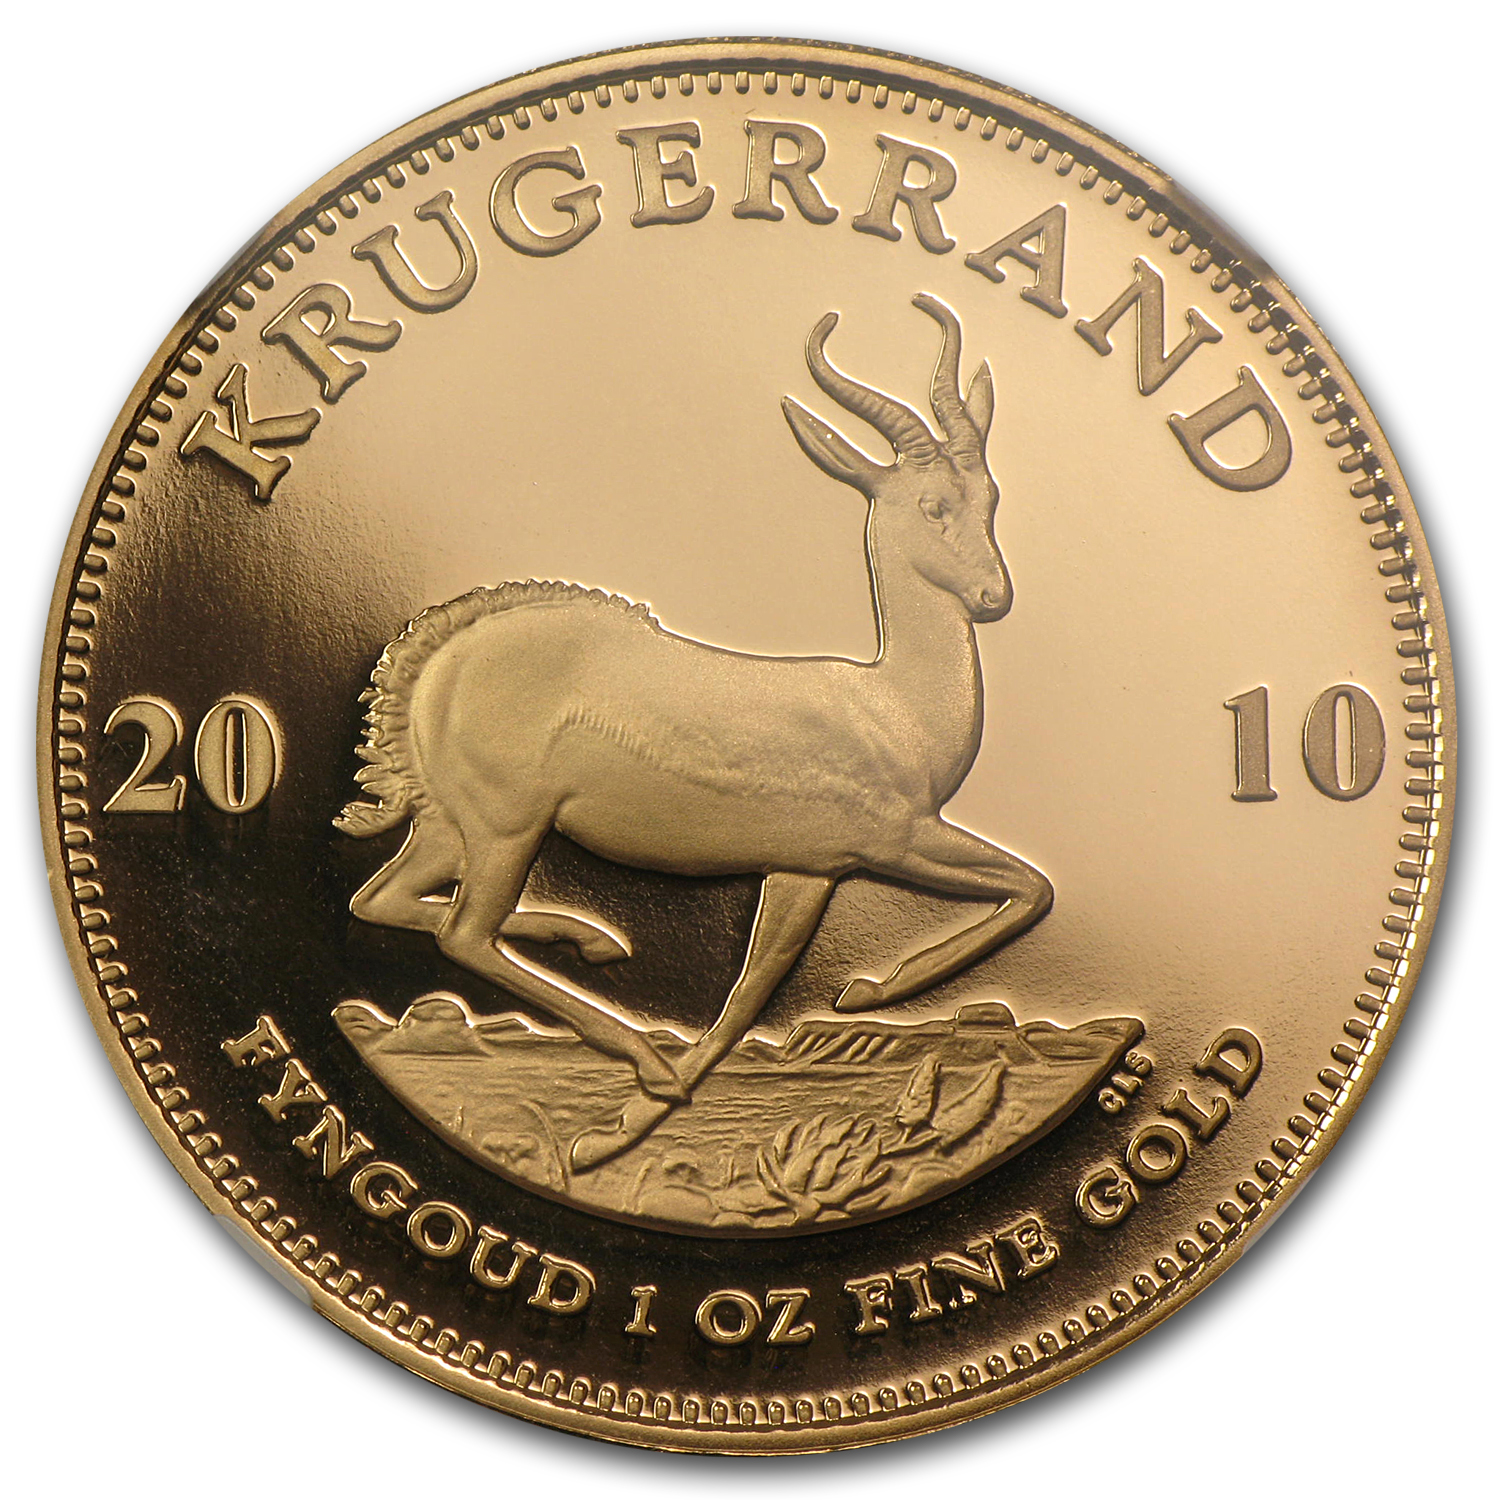 2010 South Africa 1 oz Gold Krugerrand PF-70 NGC (Berlin)